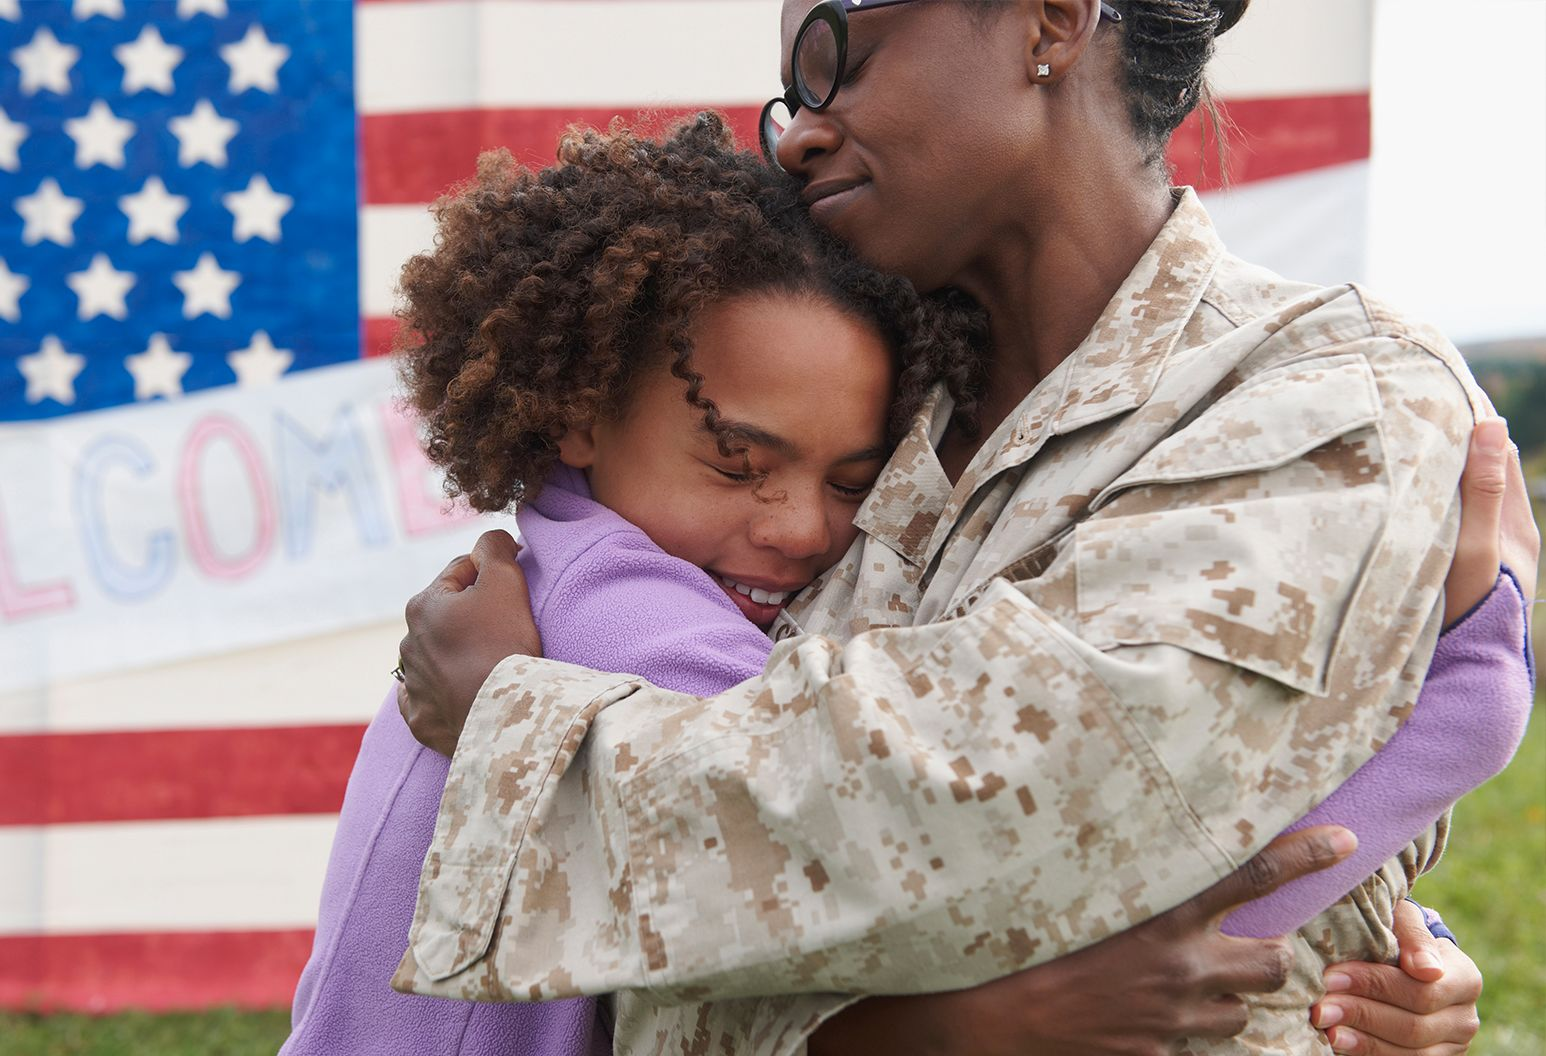 Servicewoman in camouflage is hugging young girl in purple shirt. American flag is in background with welcome home sign.